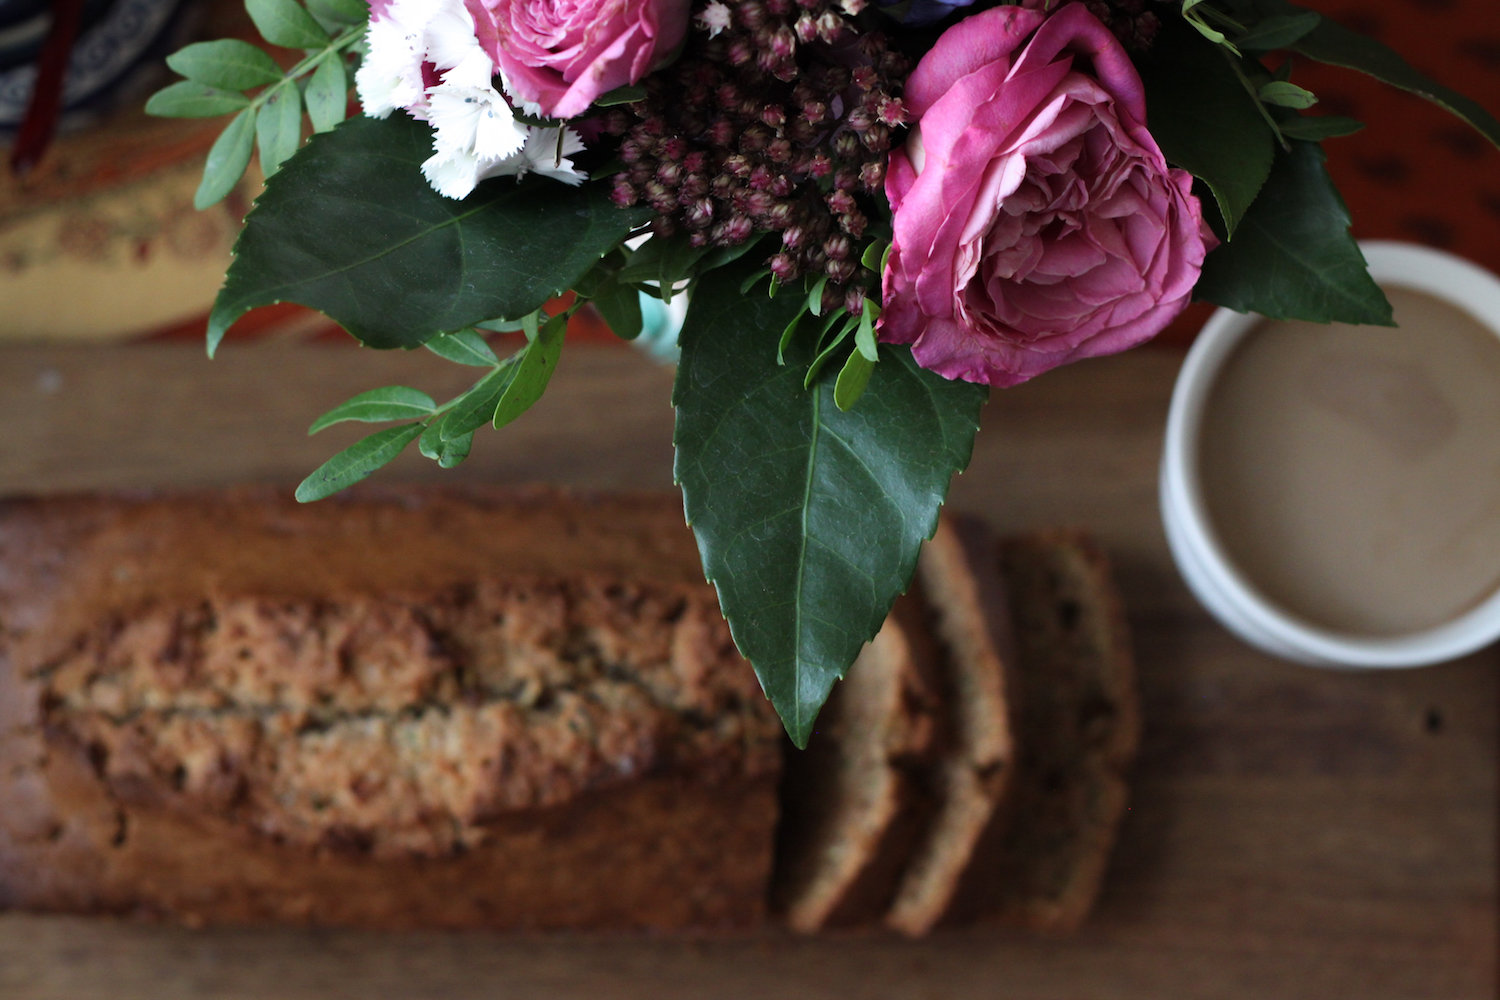 Still life with zucchini bread, flowers, and coffee (Eat Me. Drink Me.)